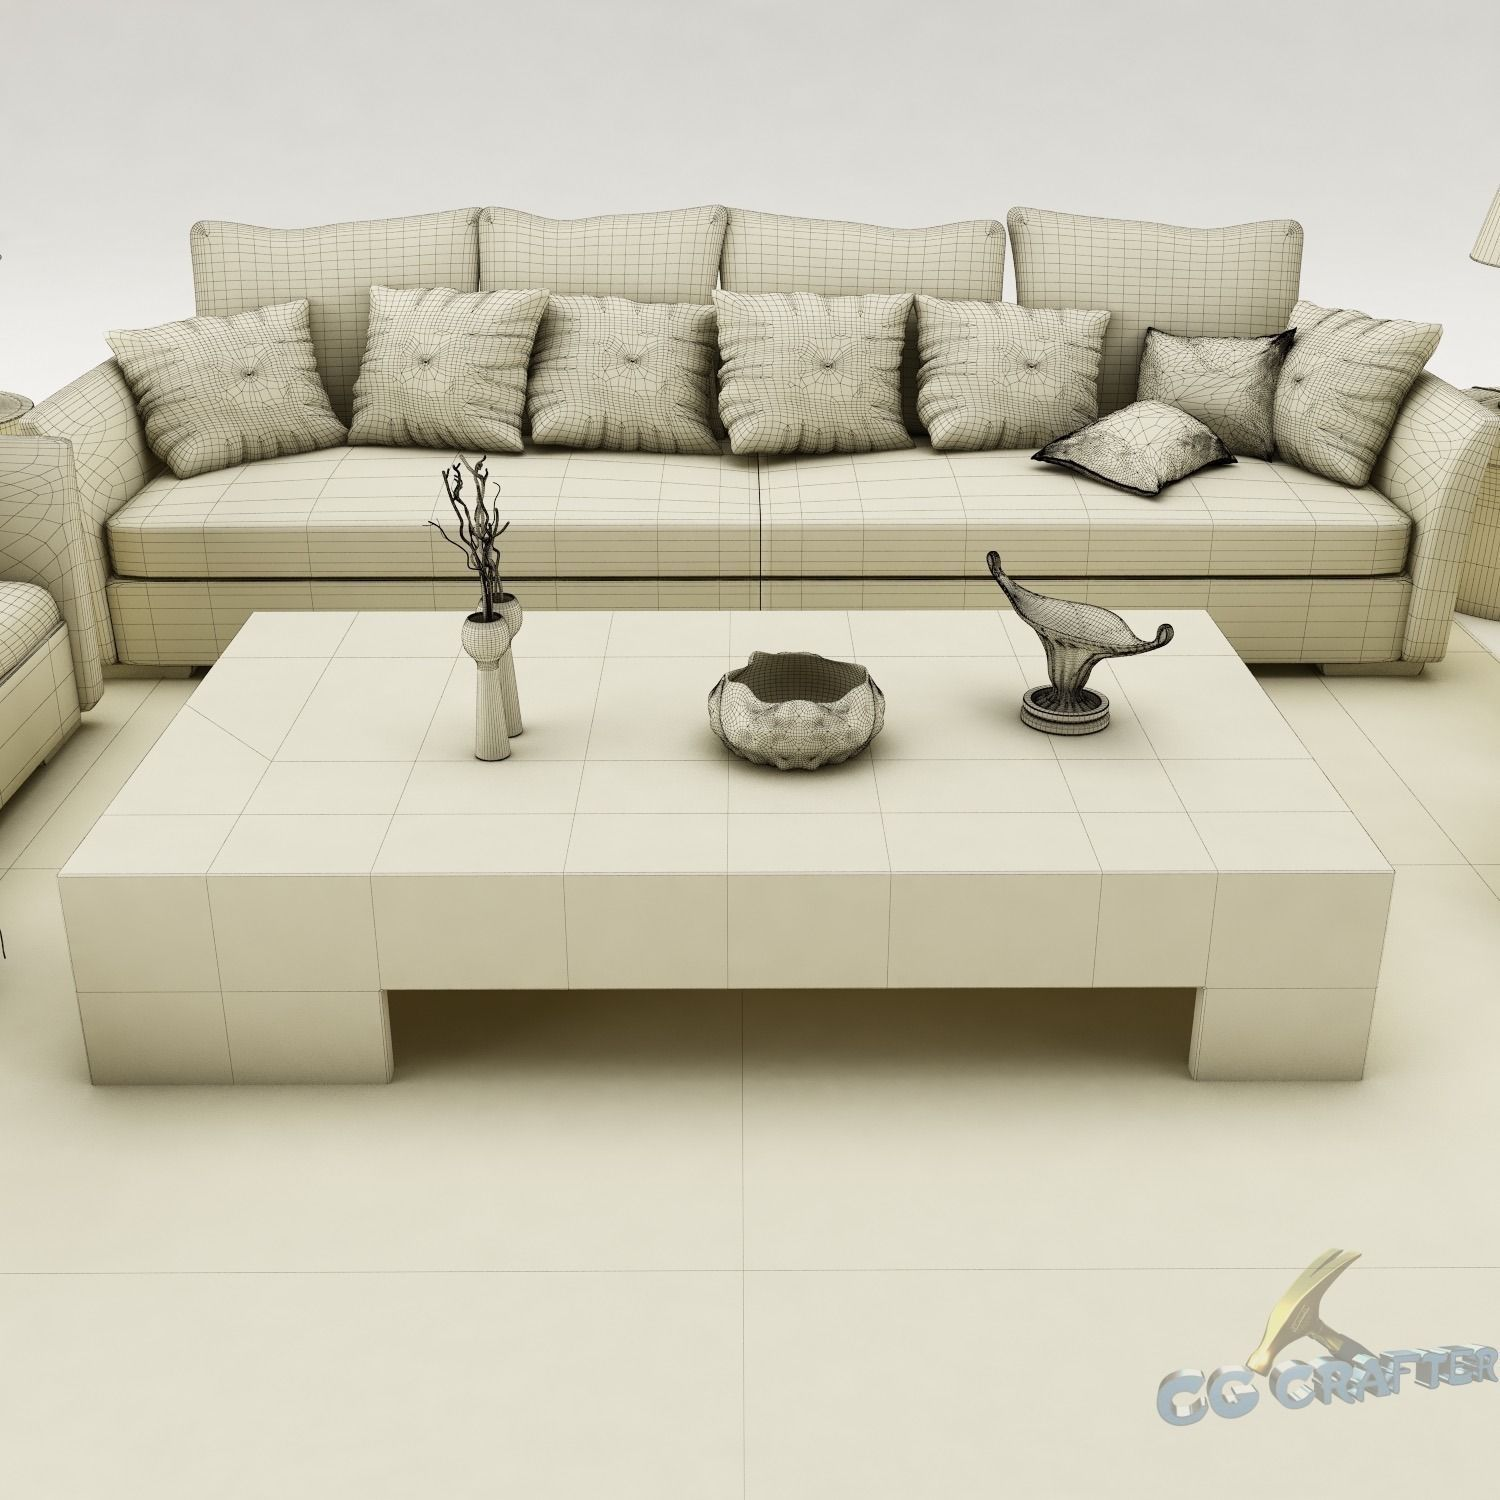 Sofa set 075 3d model max obj 3ds fbx mtl for Sofa 3d model